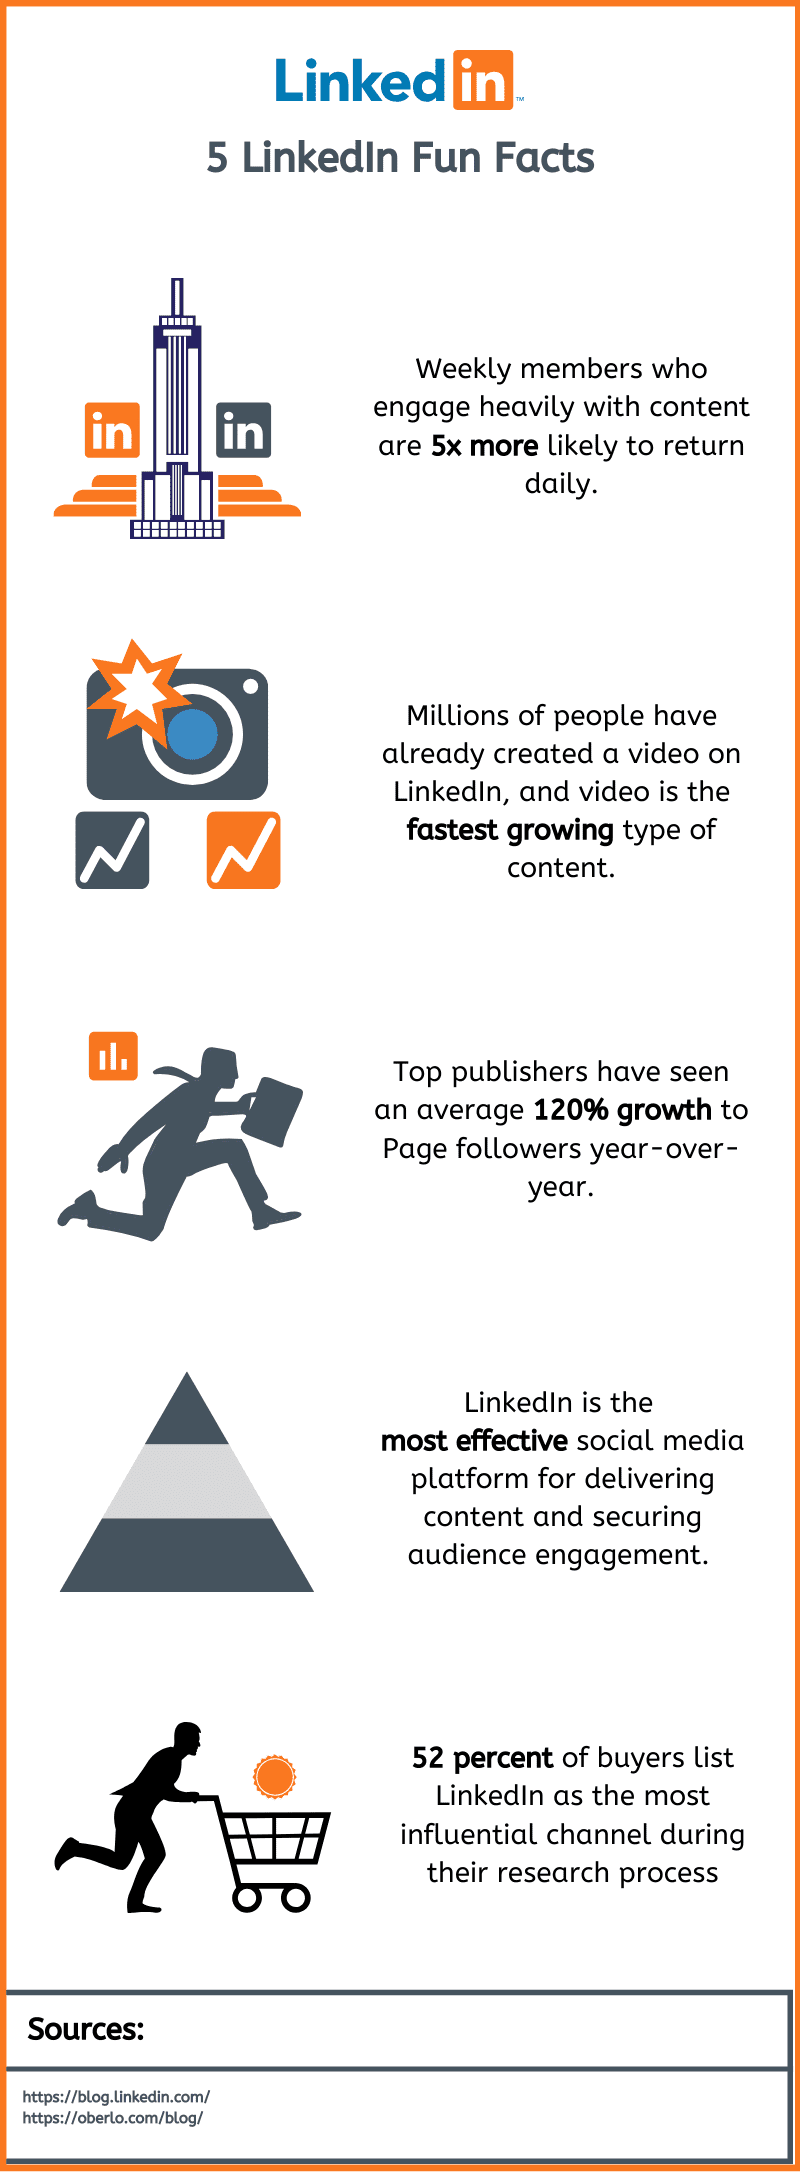 LinkedIn is considered one of the top content marketing platforms around the world. Here are 5 fun facts or stats about LinkedIn to notice.